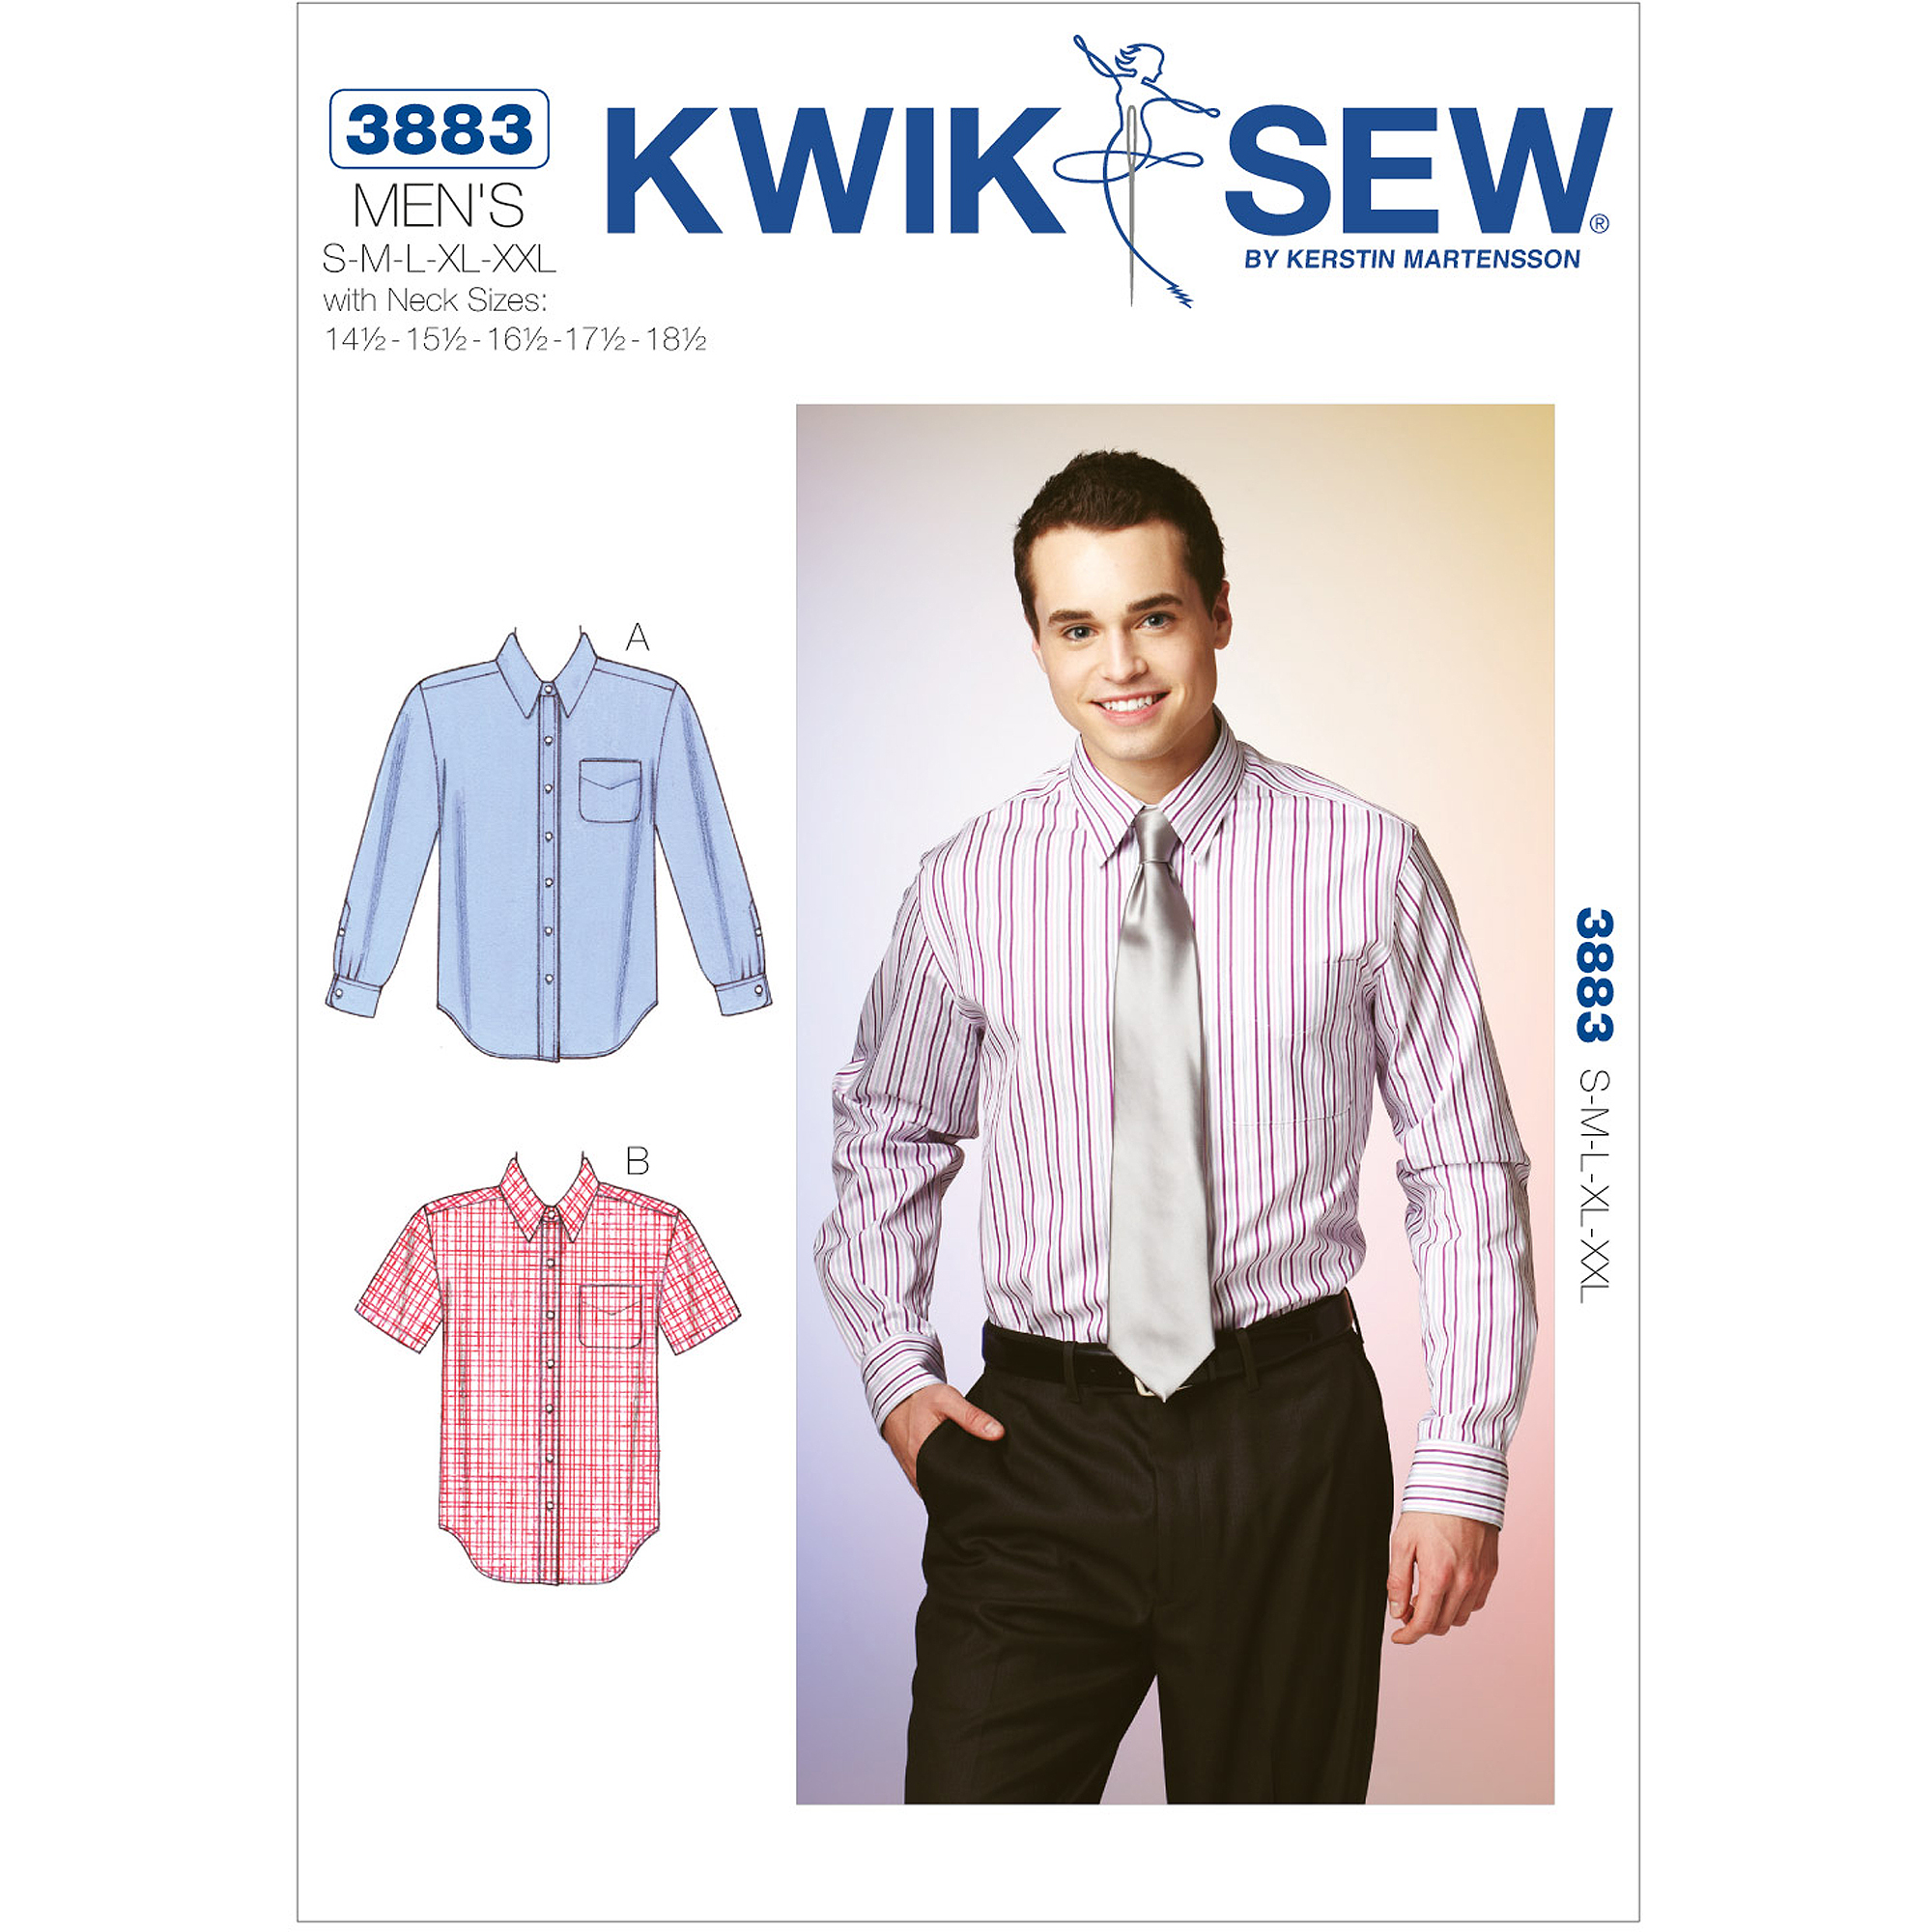 Kwik Sew Pattern Shirts, (S, M, L, XL, XXL) with Neck Sizes (14, 1 and 2, 15)